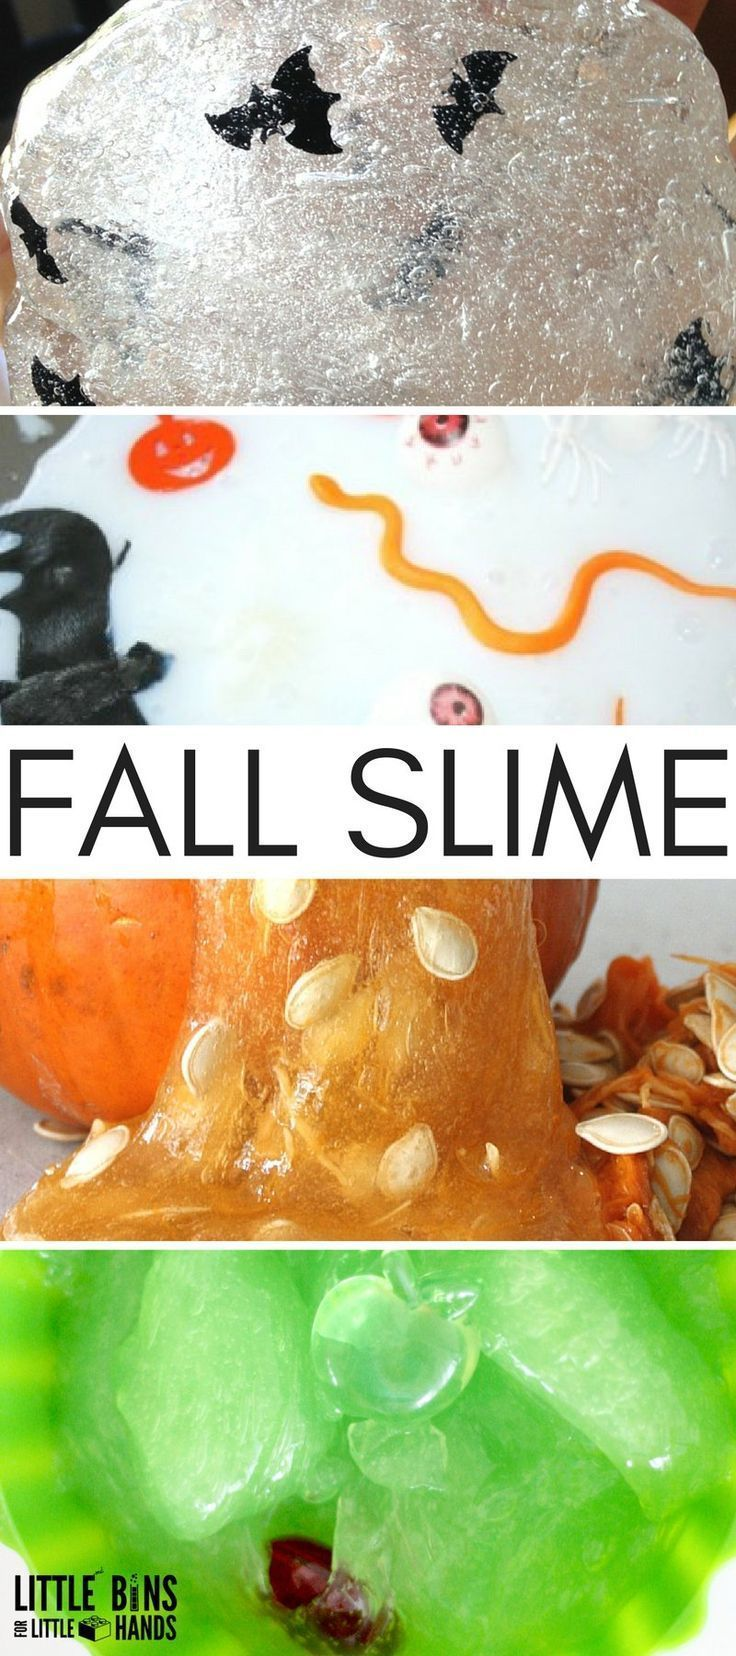 Fall slime ideas and recipes for kid to make slime with homemade slime recipe